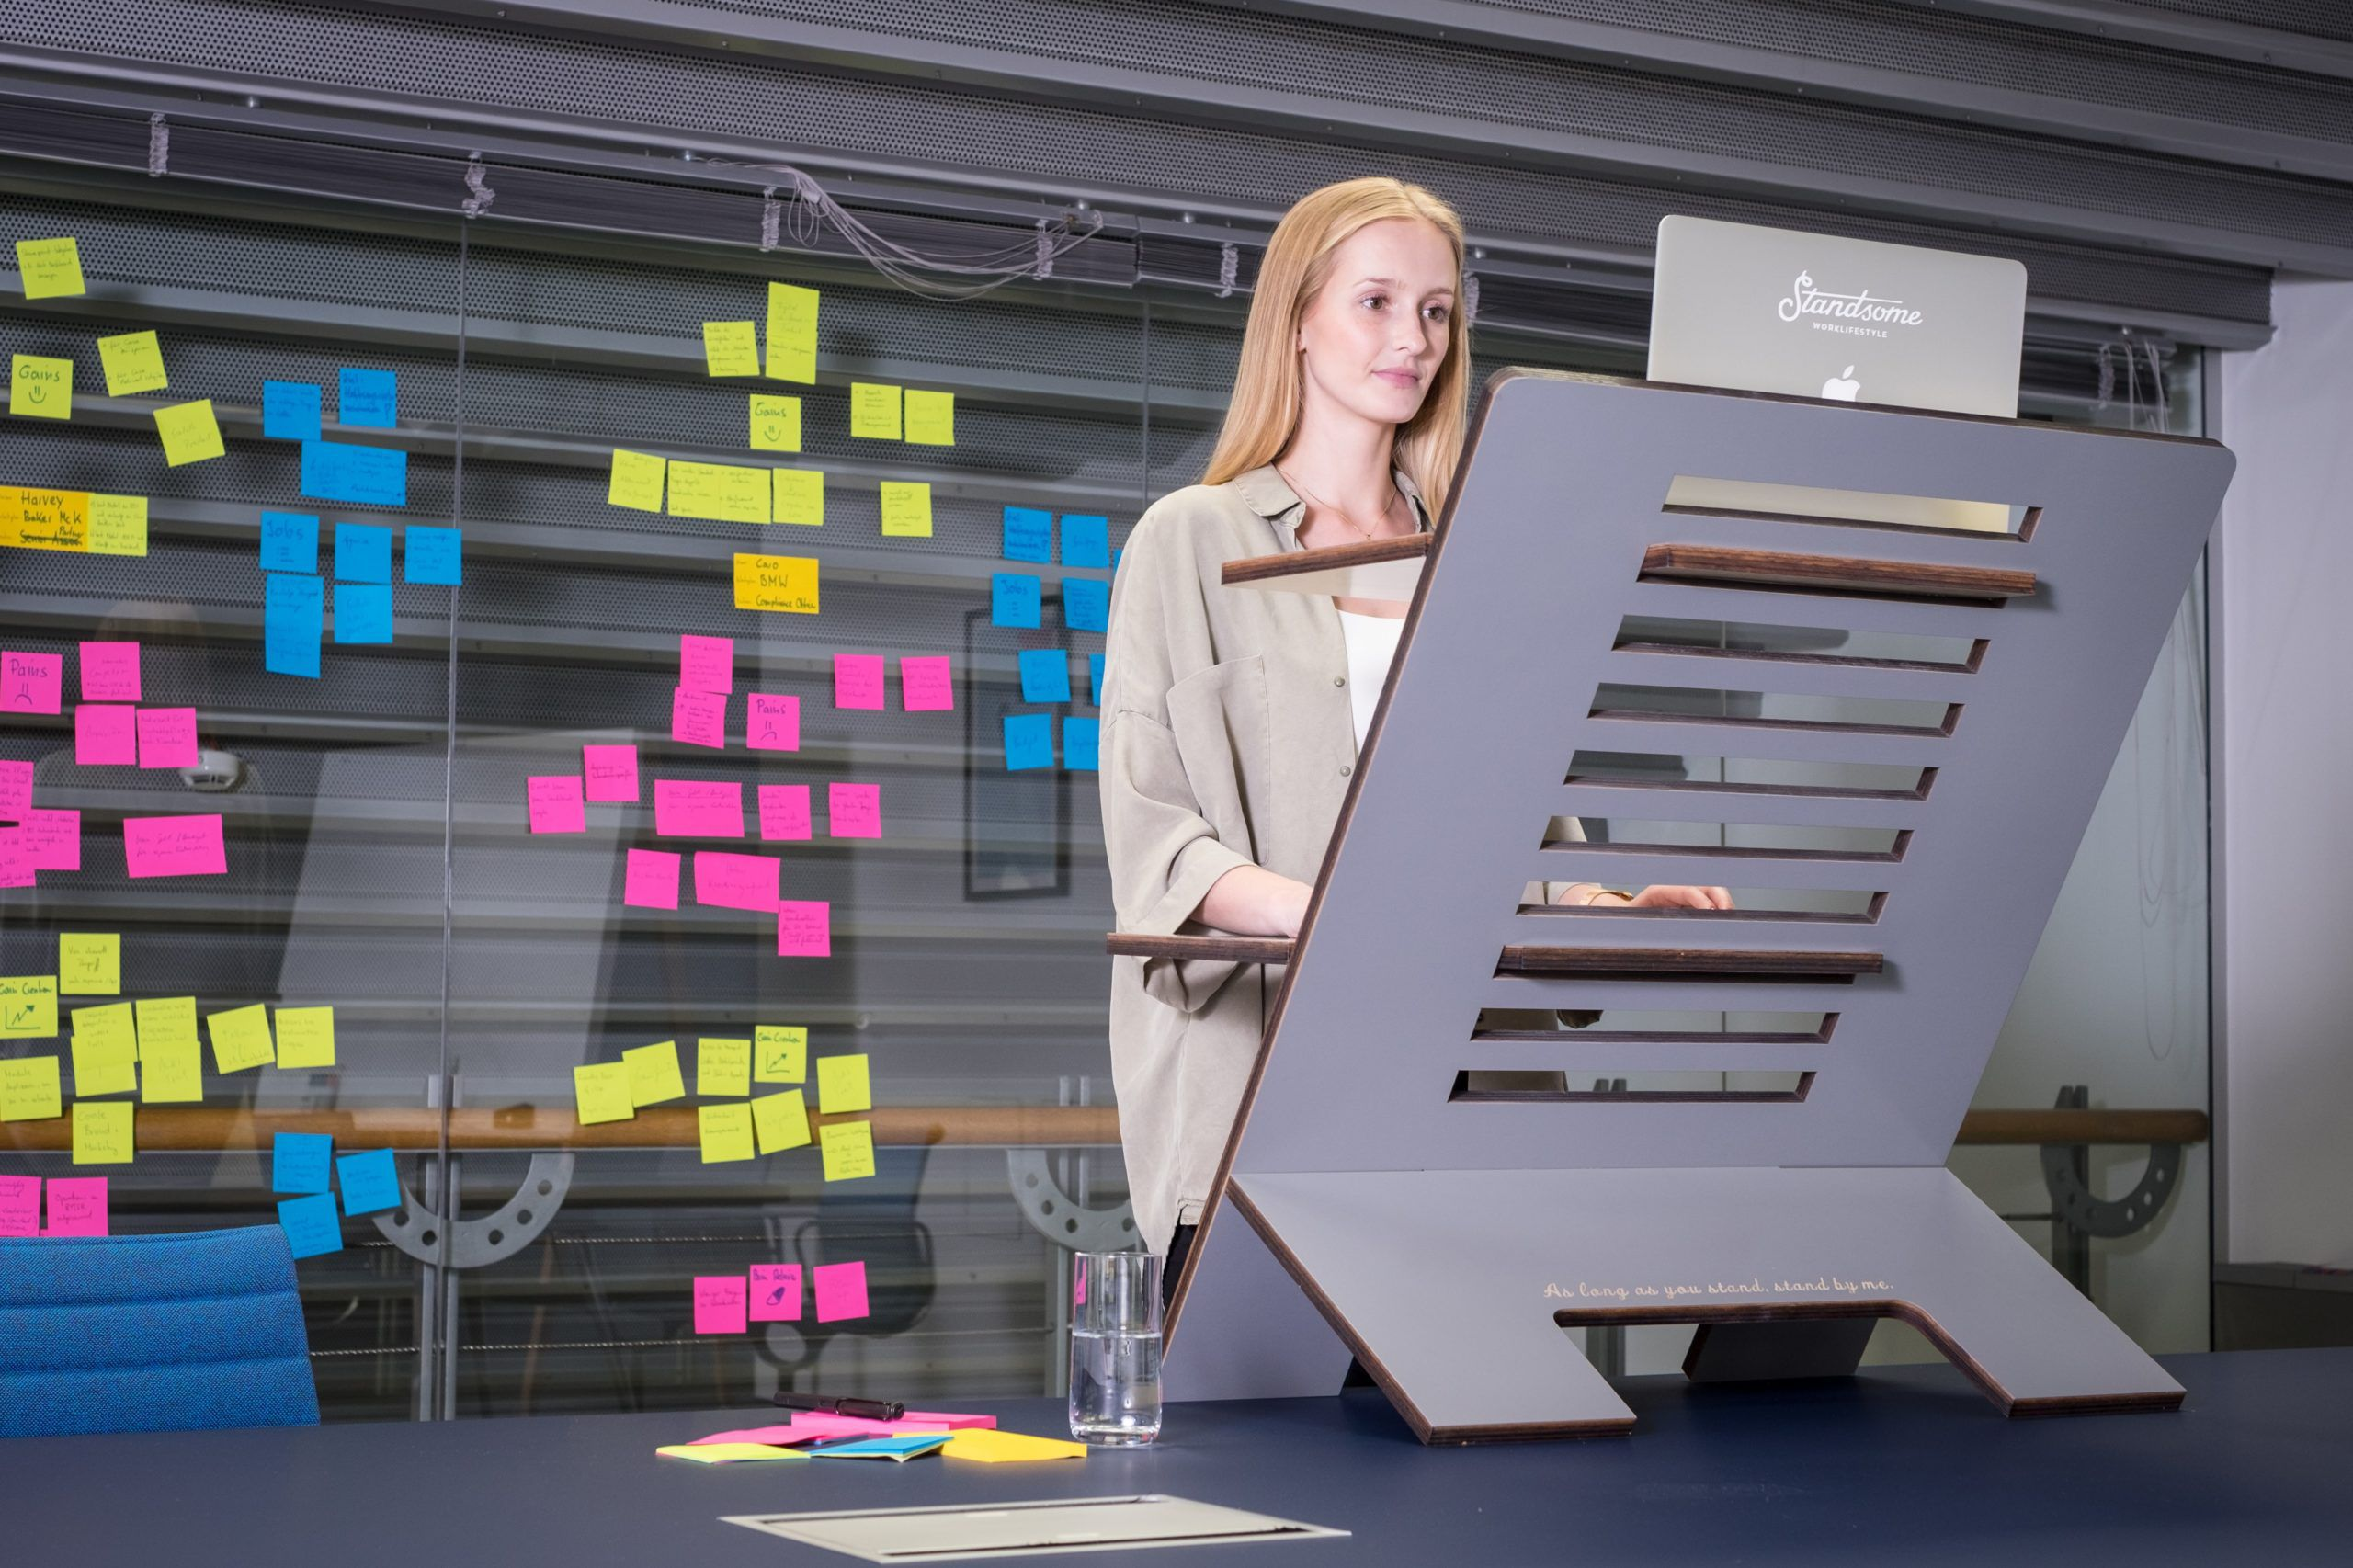 Woman working at a standing desk, with a clear wall of sticky notes behind her